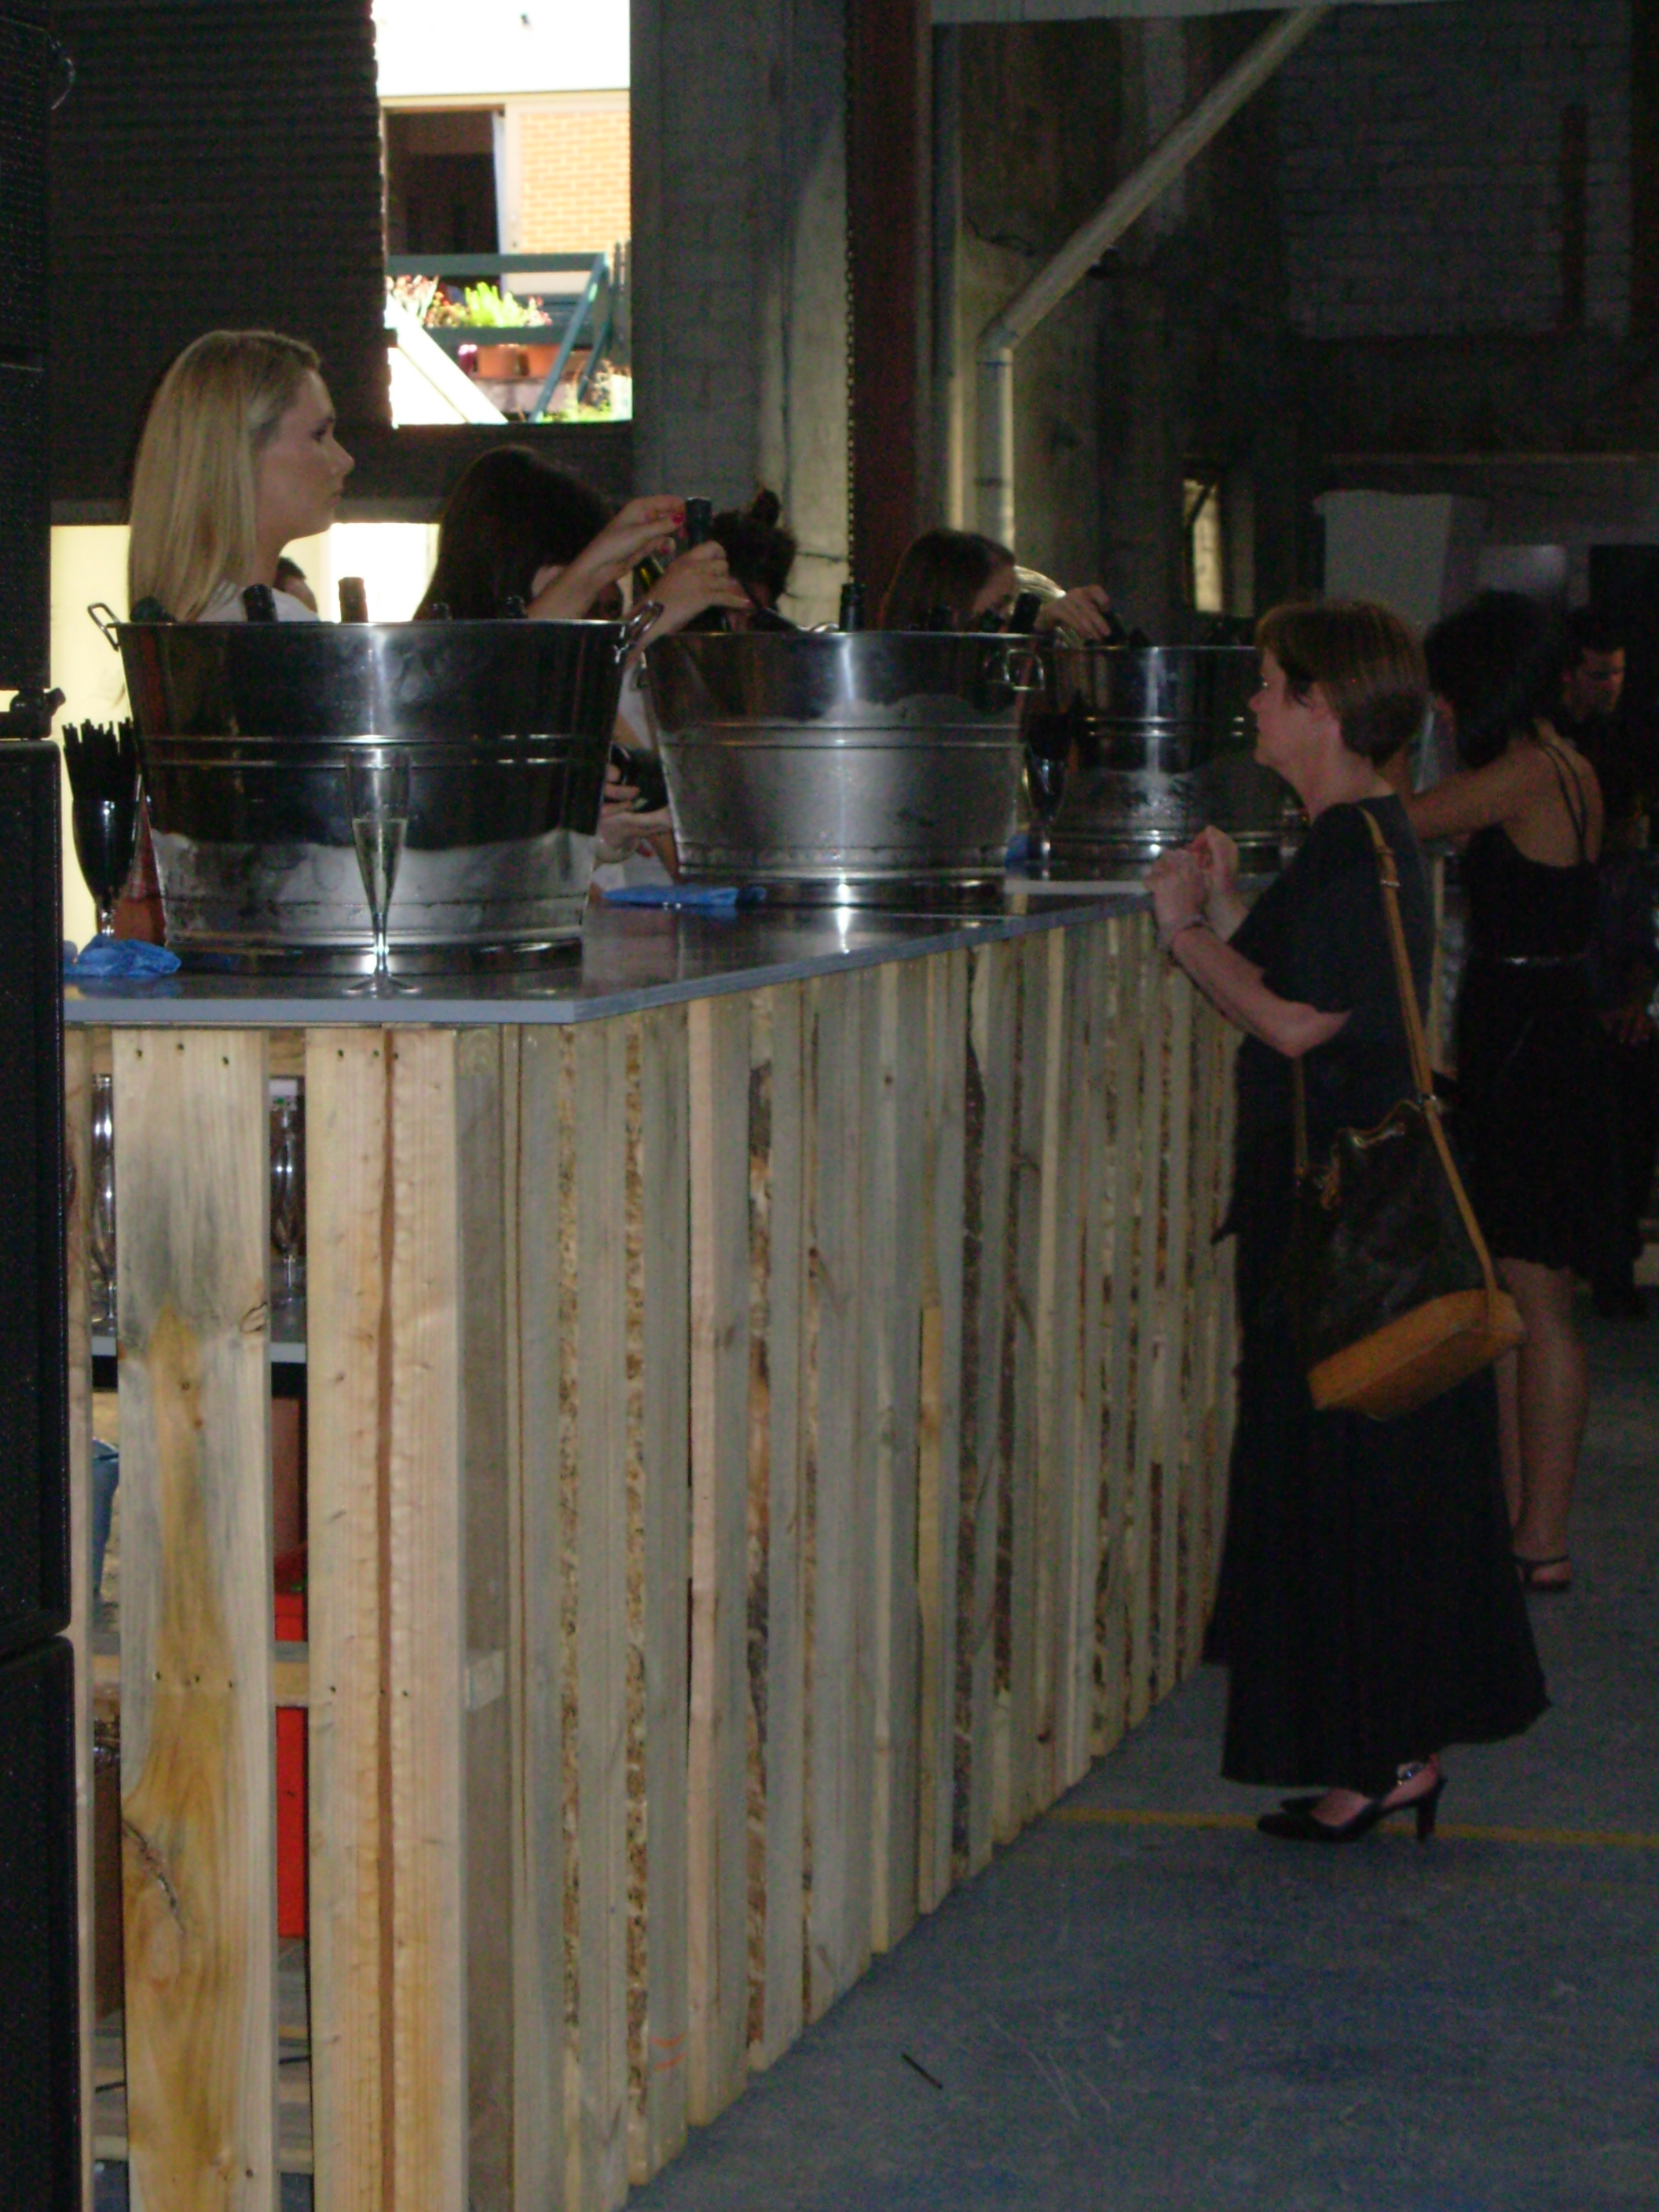 RMIT Exhibition The bar